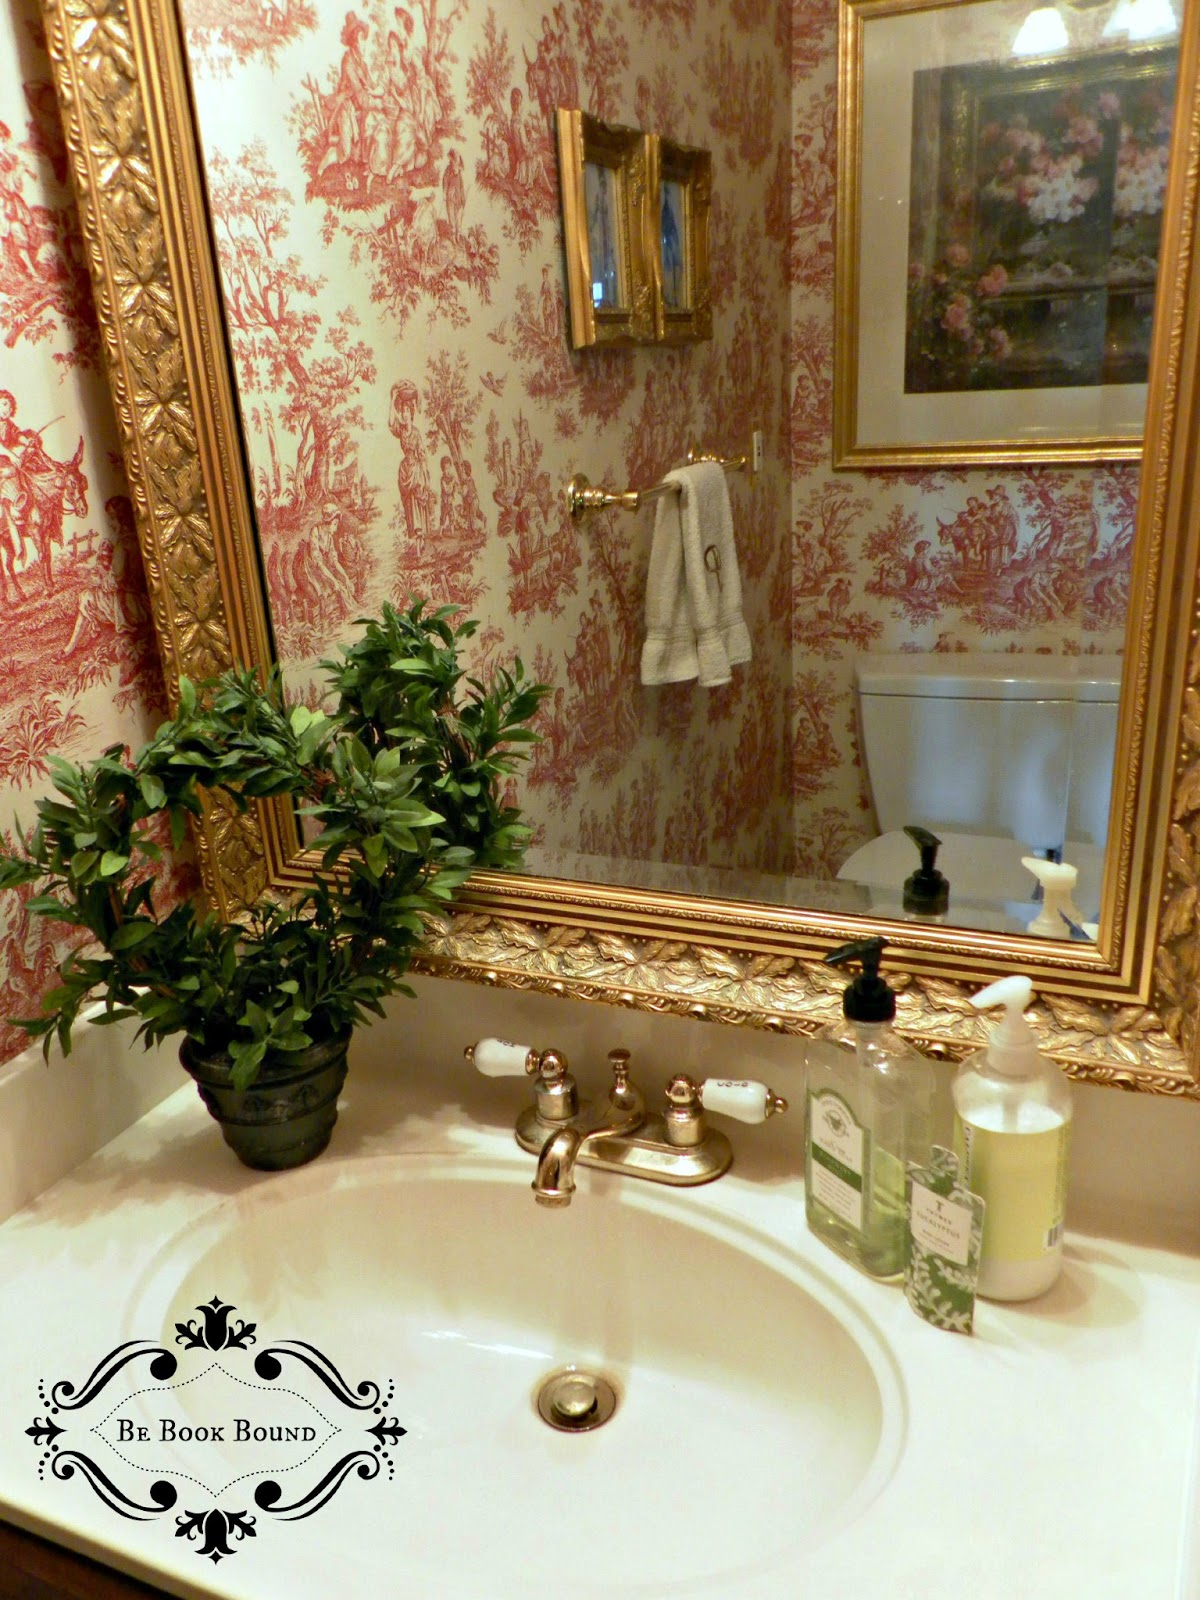 Be Book Bound Pride and Prejudice A Toile Powder Room